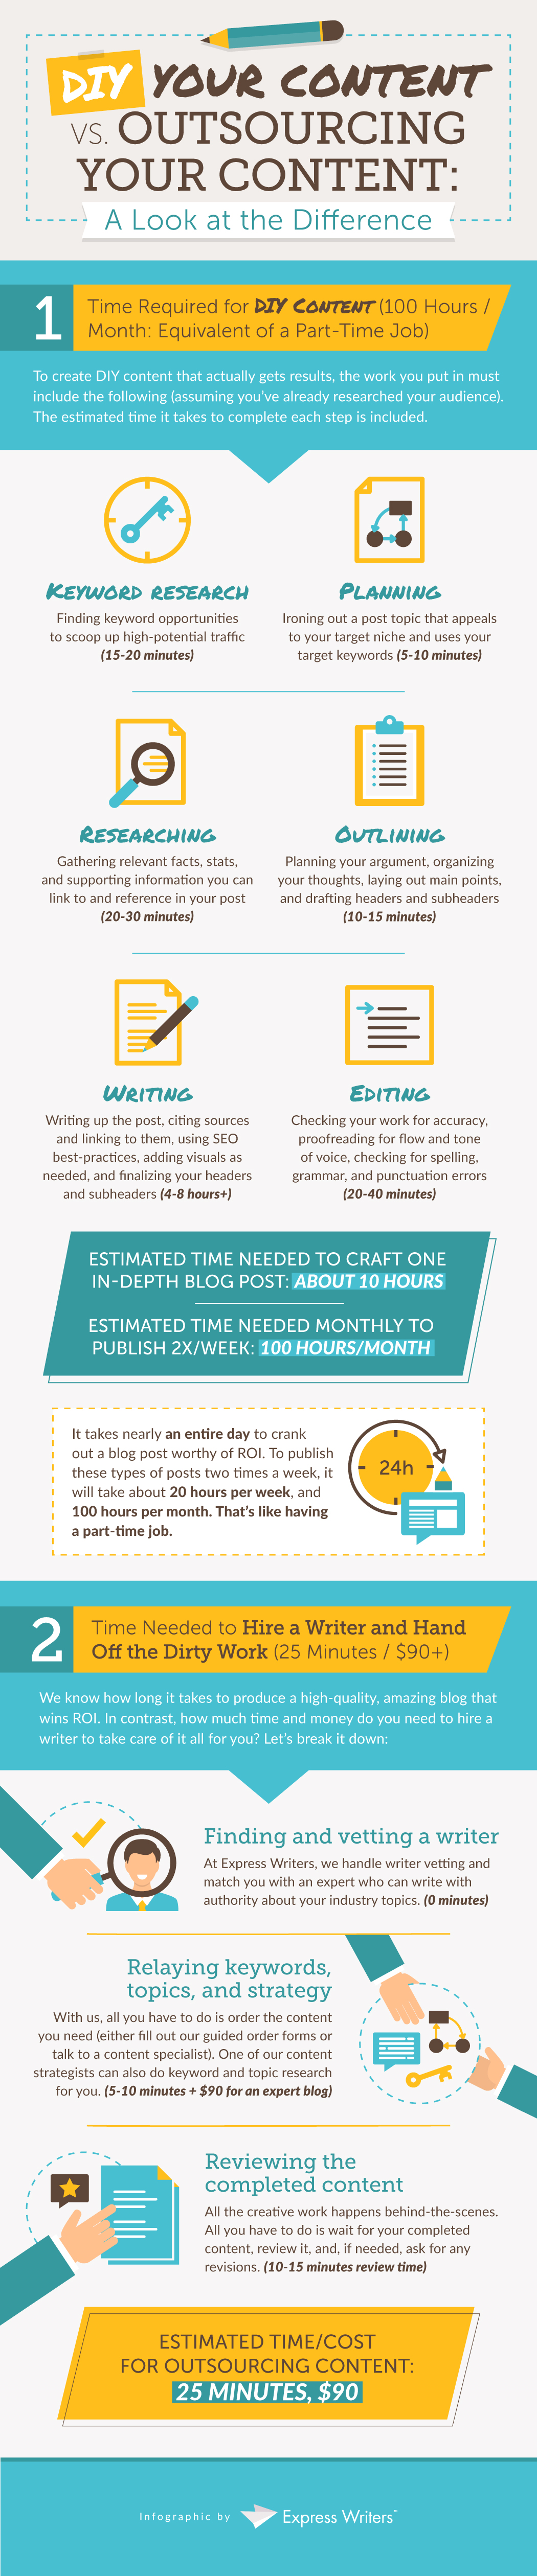 outsourcing your content infographic